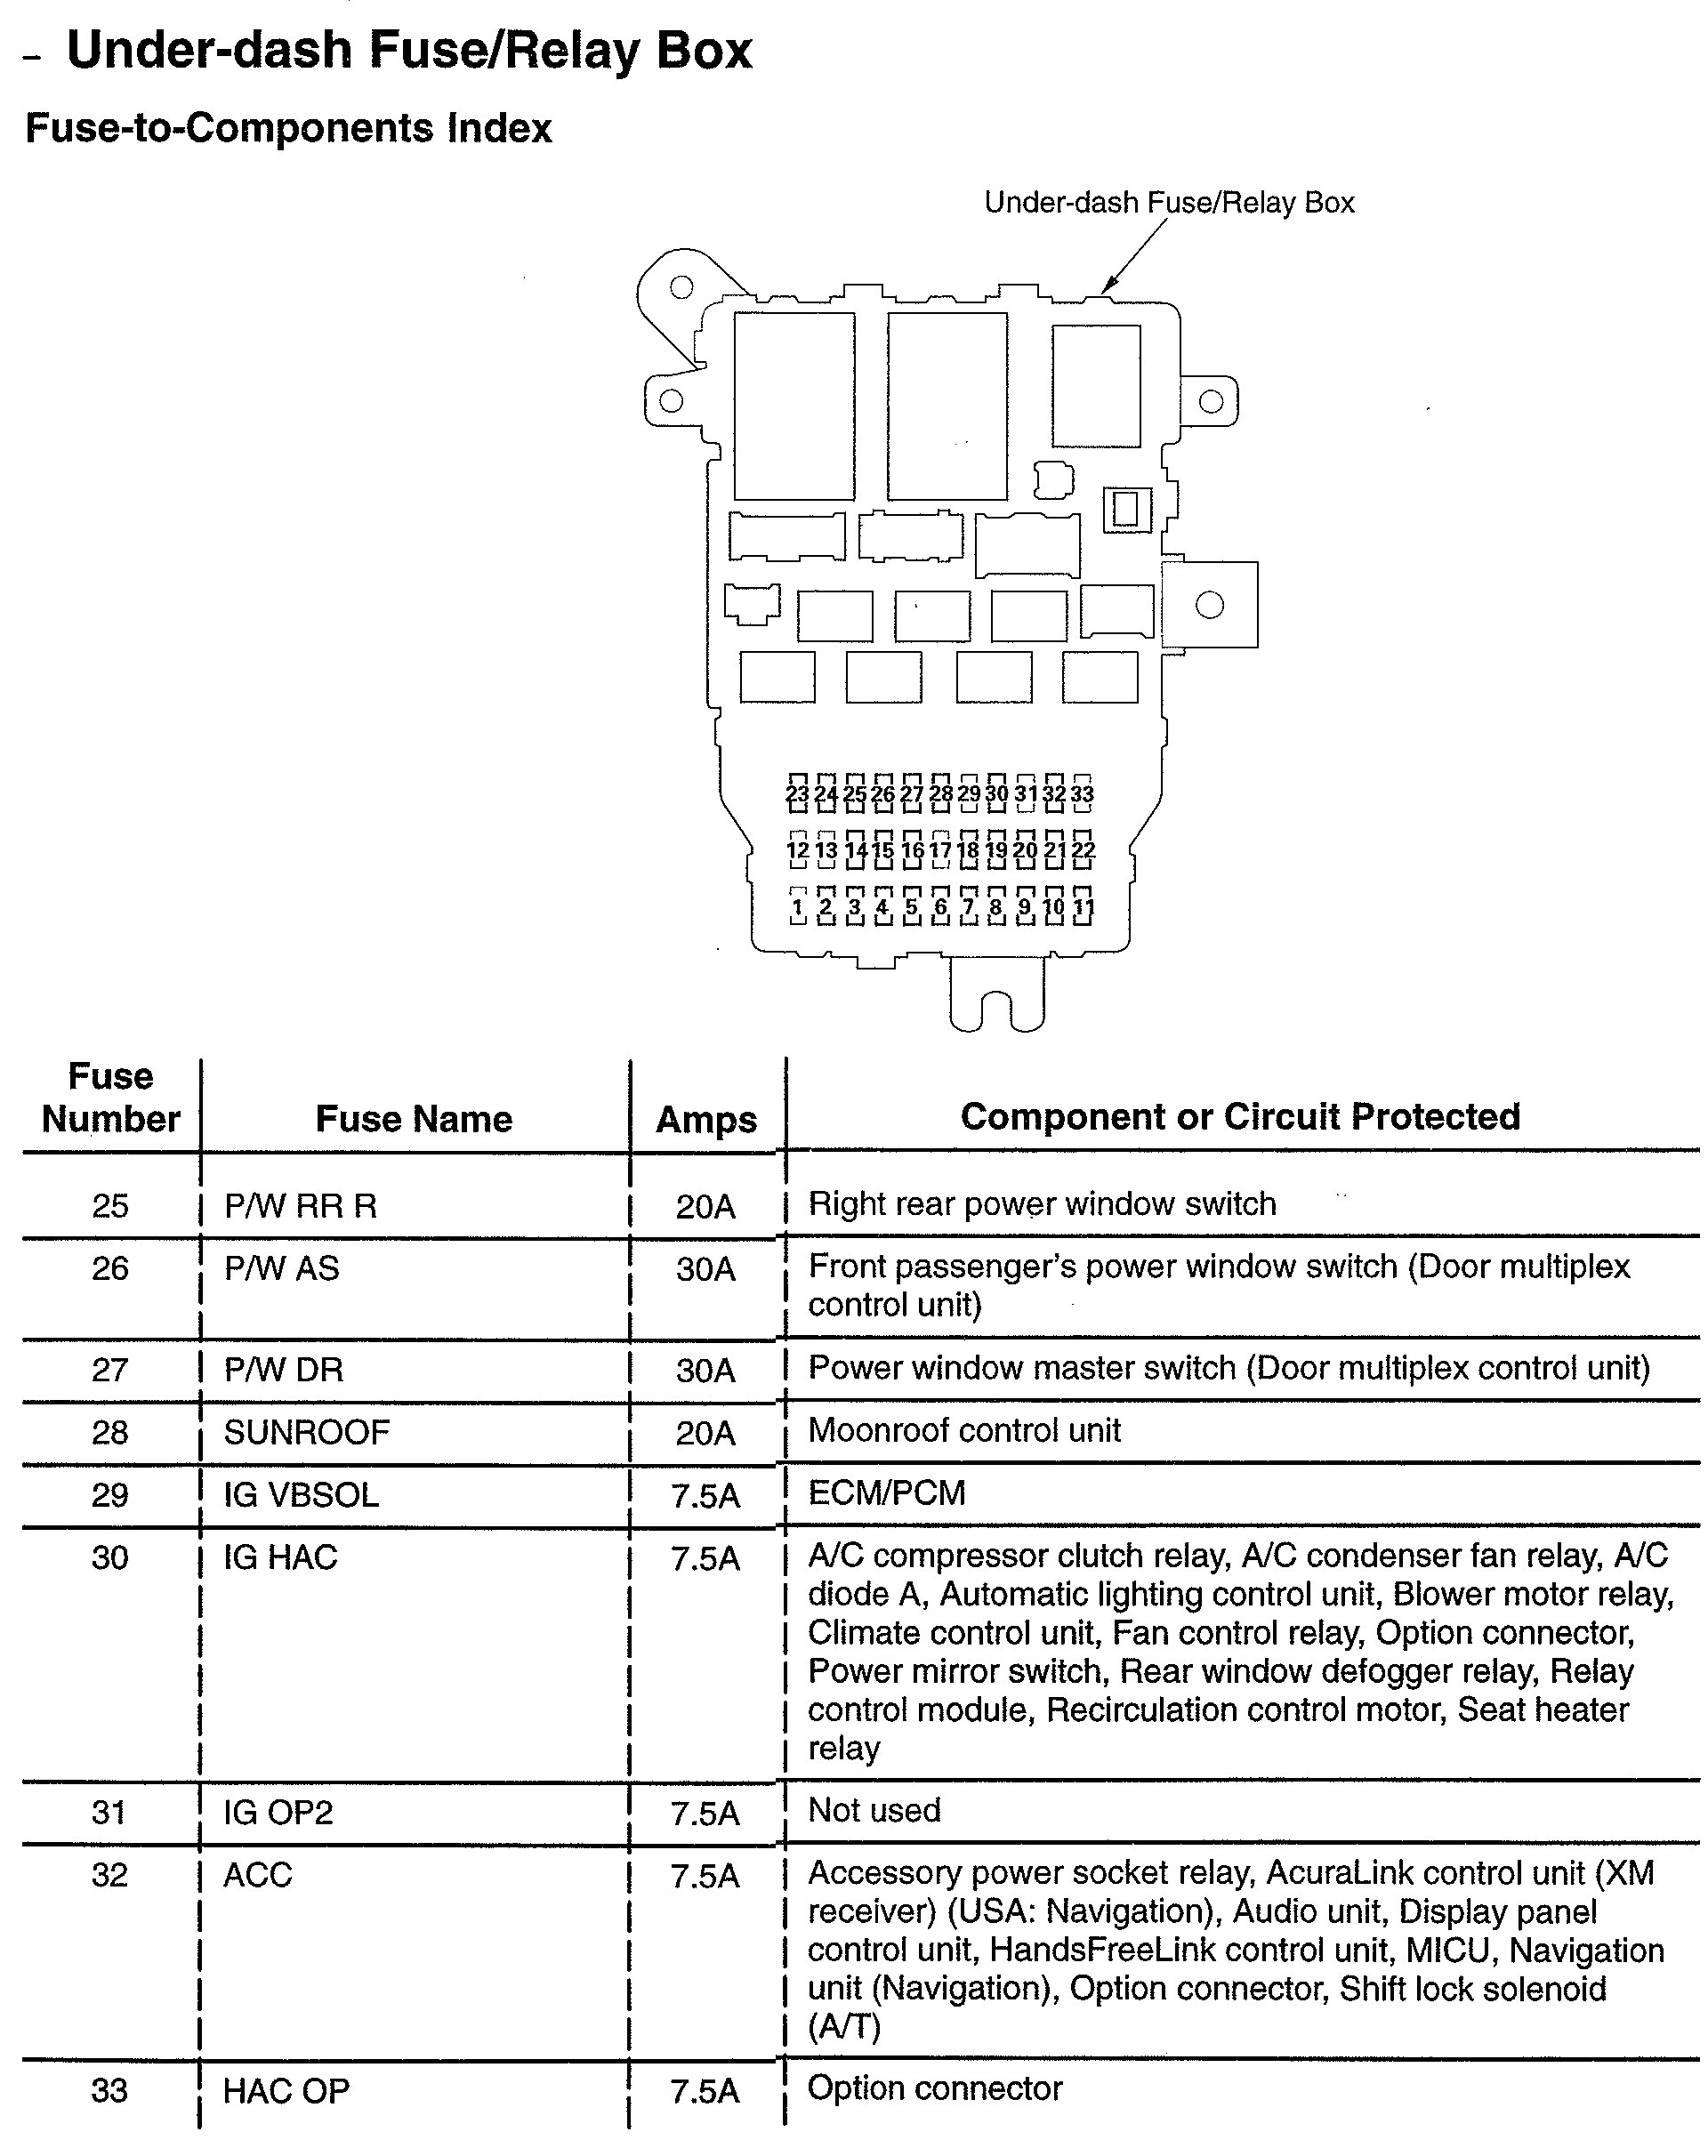 acura tl wiring diagram fuse panel 3 2008 acura tl (2008) wiring diagrams fuse panel carknowledge 2008 saab 9-3 fuse box diagram at couponss.co